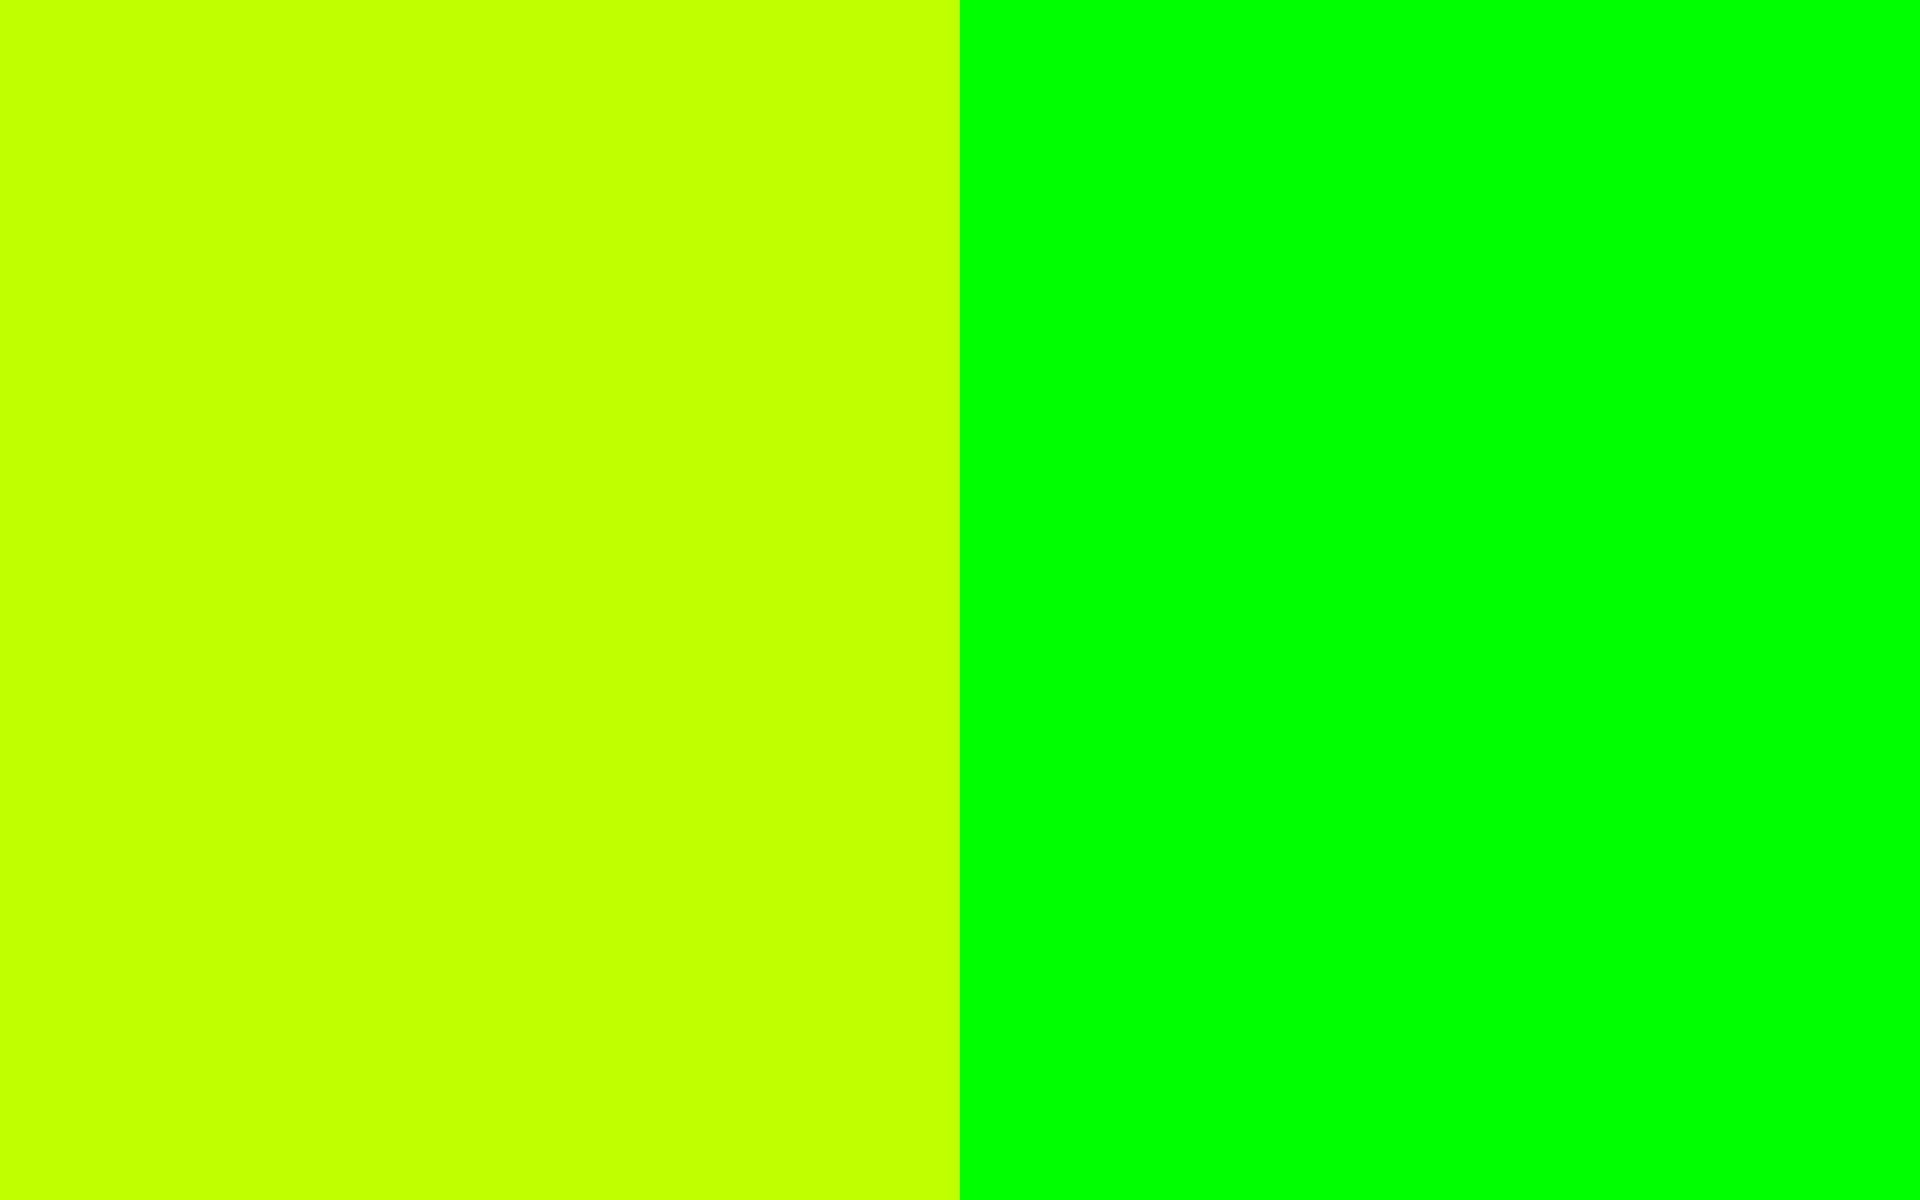 1920x1200 lime-green-background-1920×1200-WTG200426607